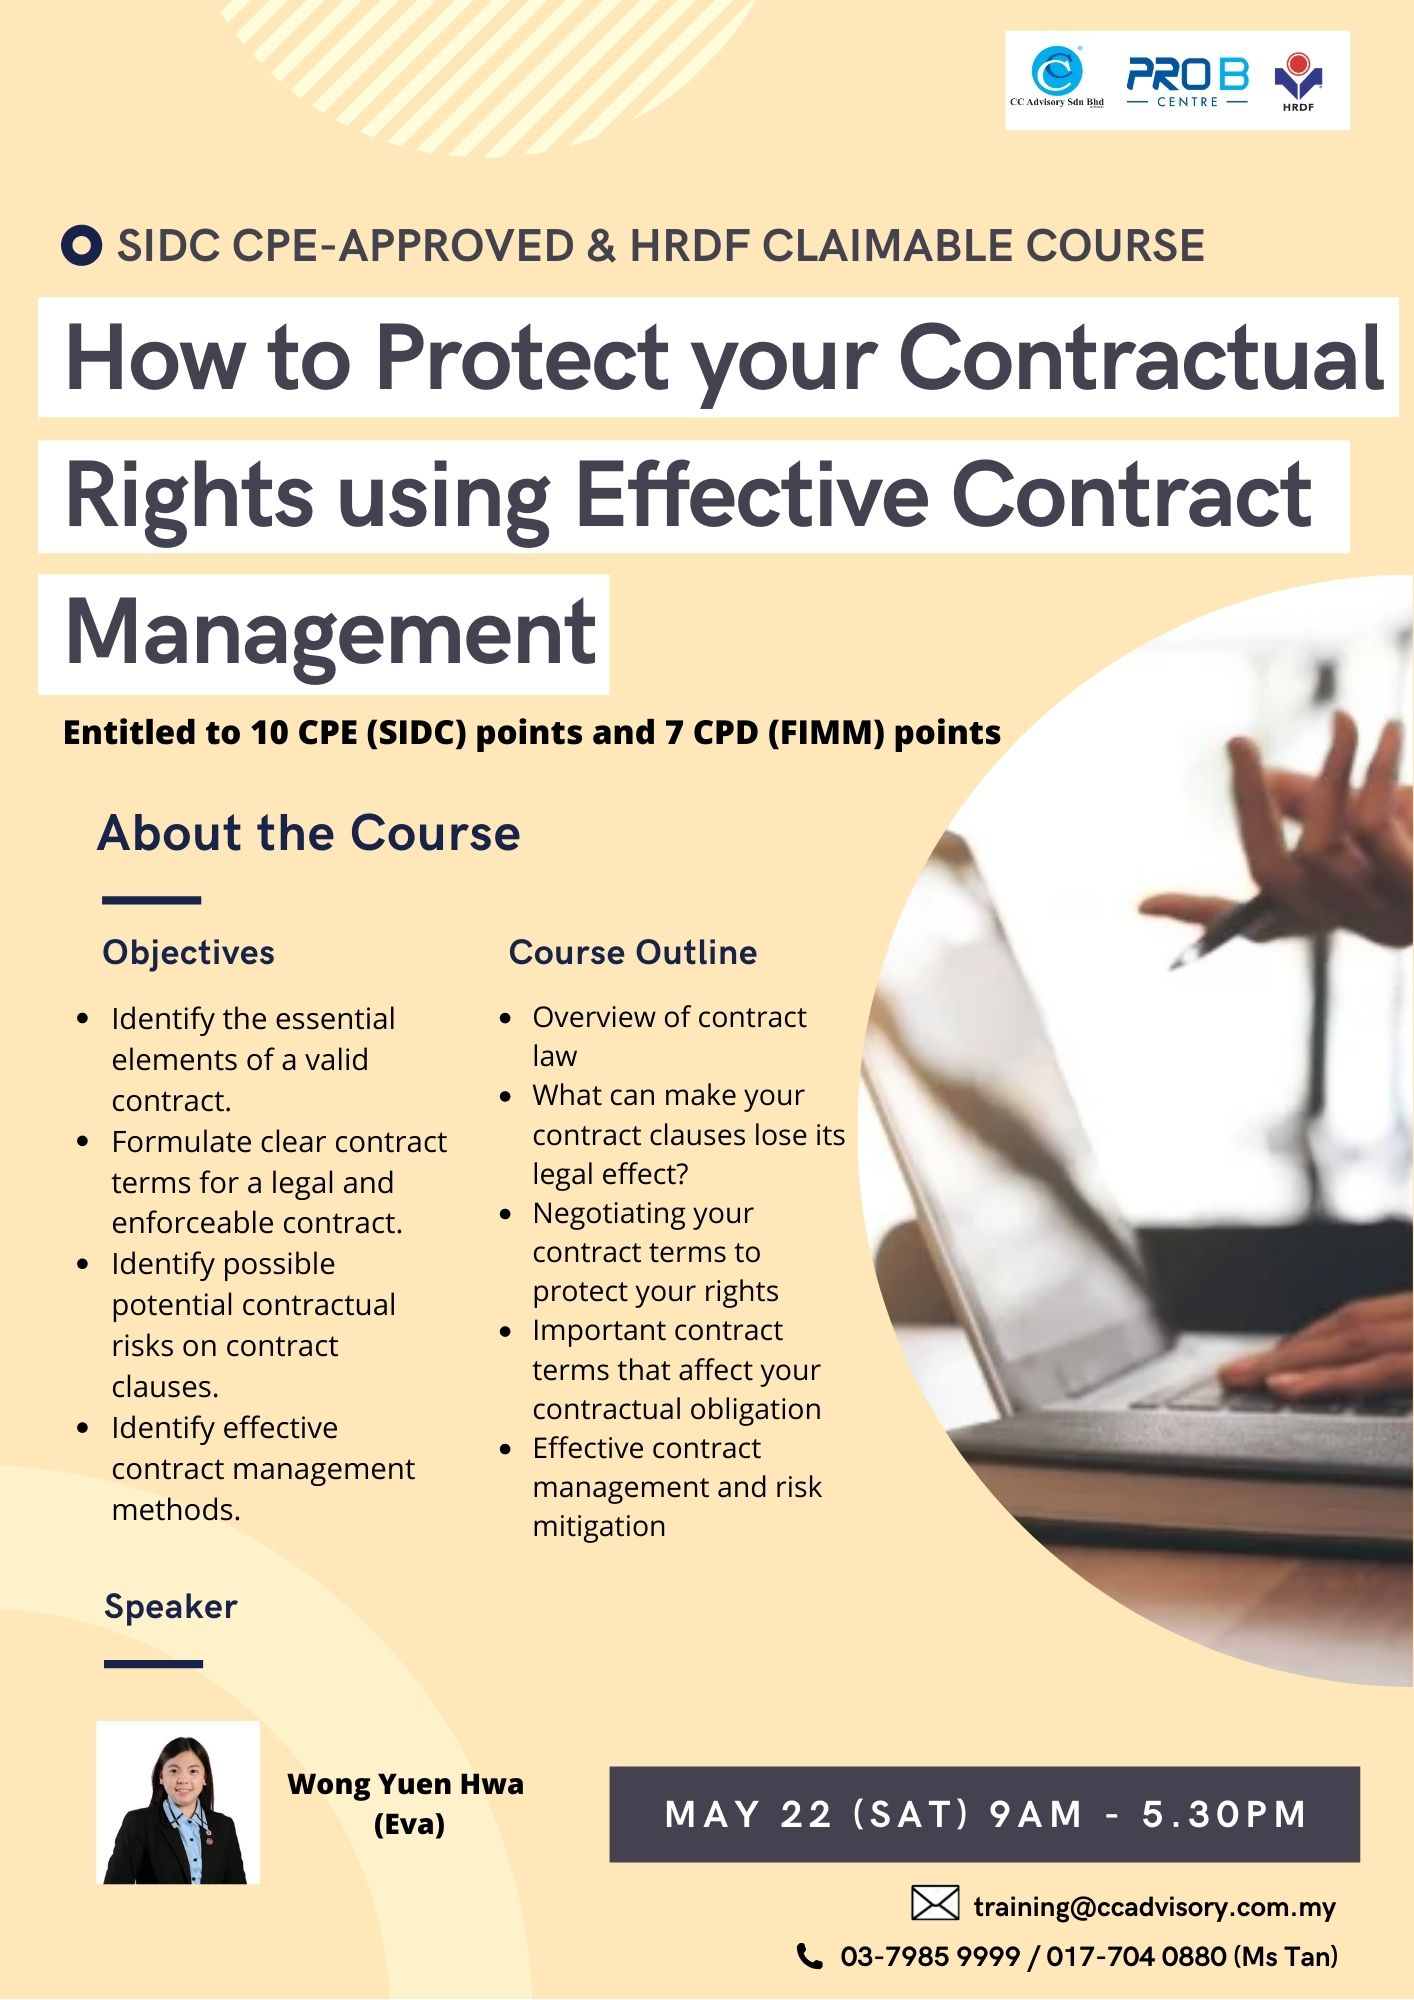 How to Protect your Contractual Rights using Effective Contract Management